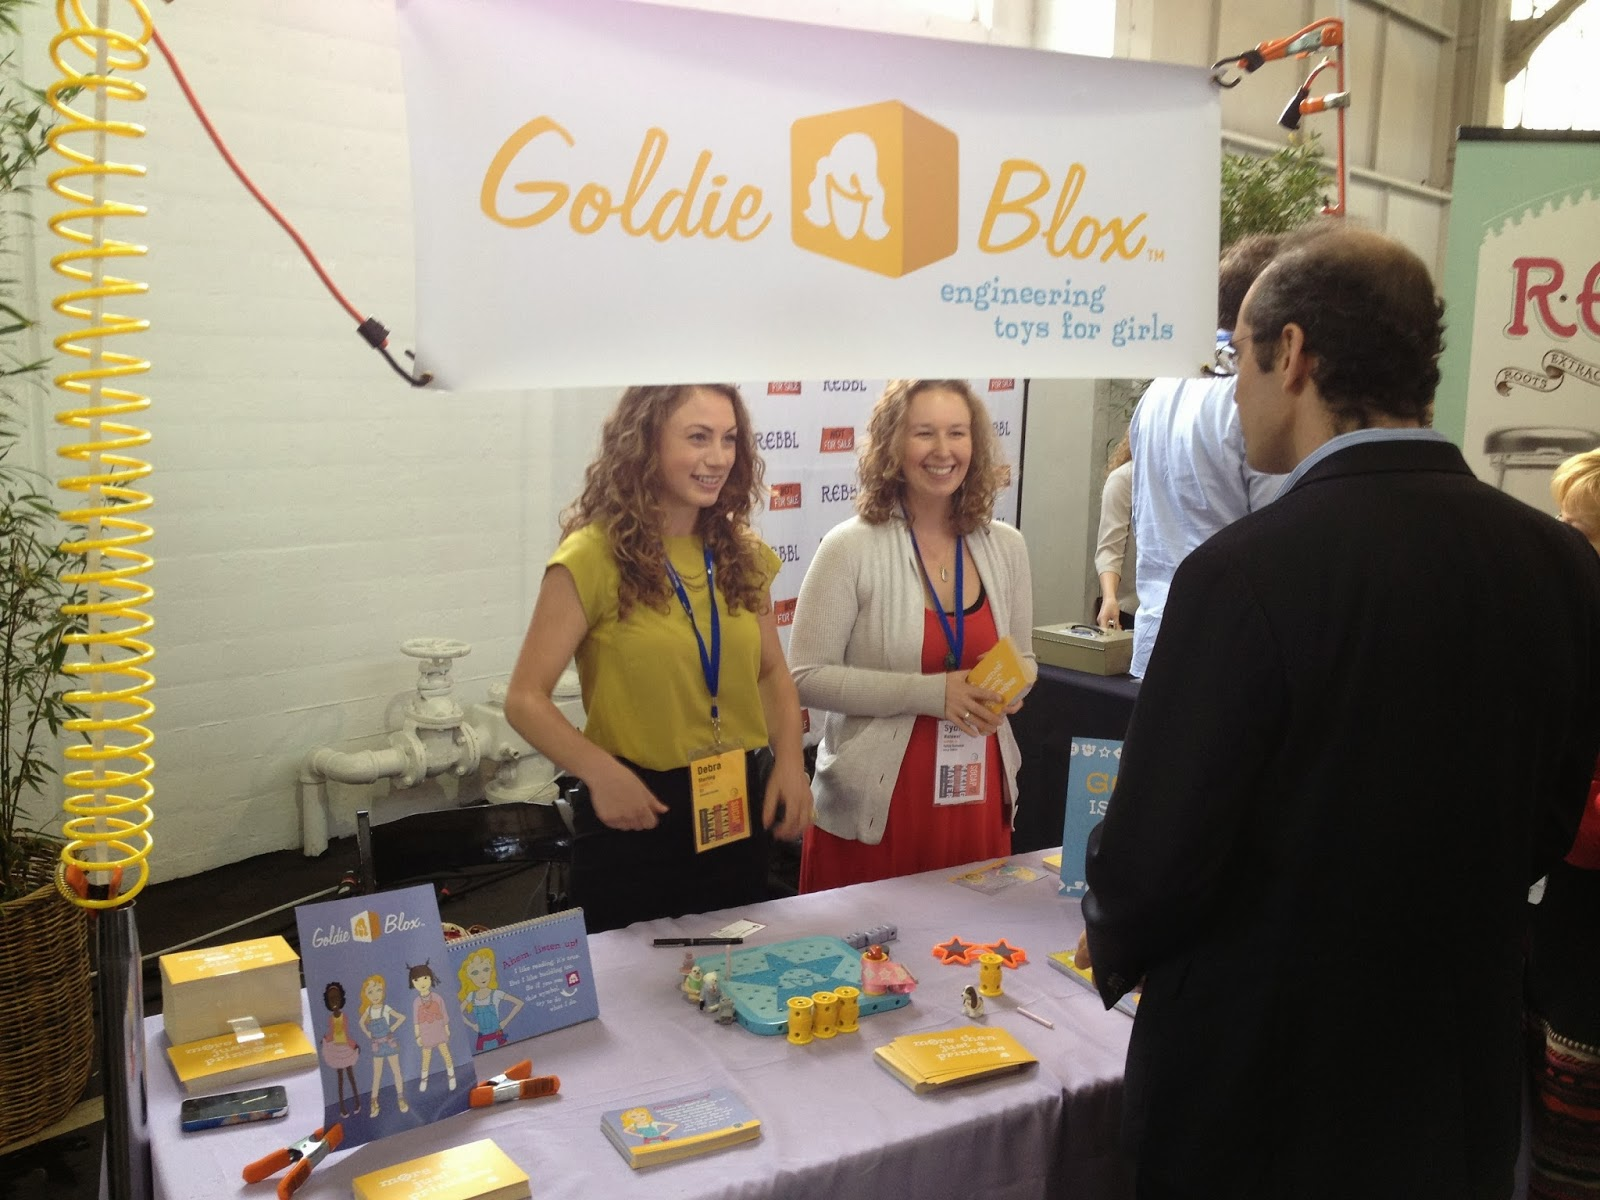 New Girls Toys Encourage Engineering Campus Mercante